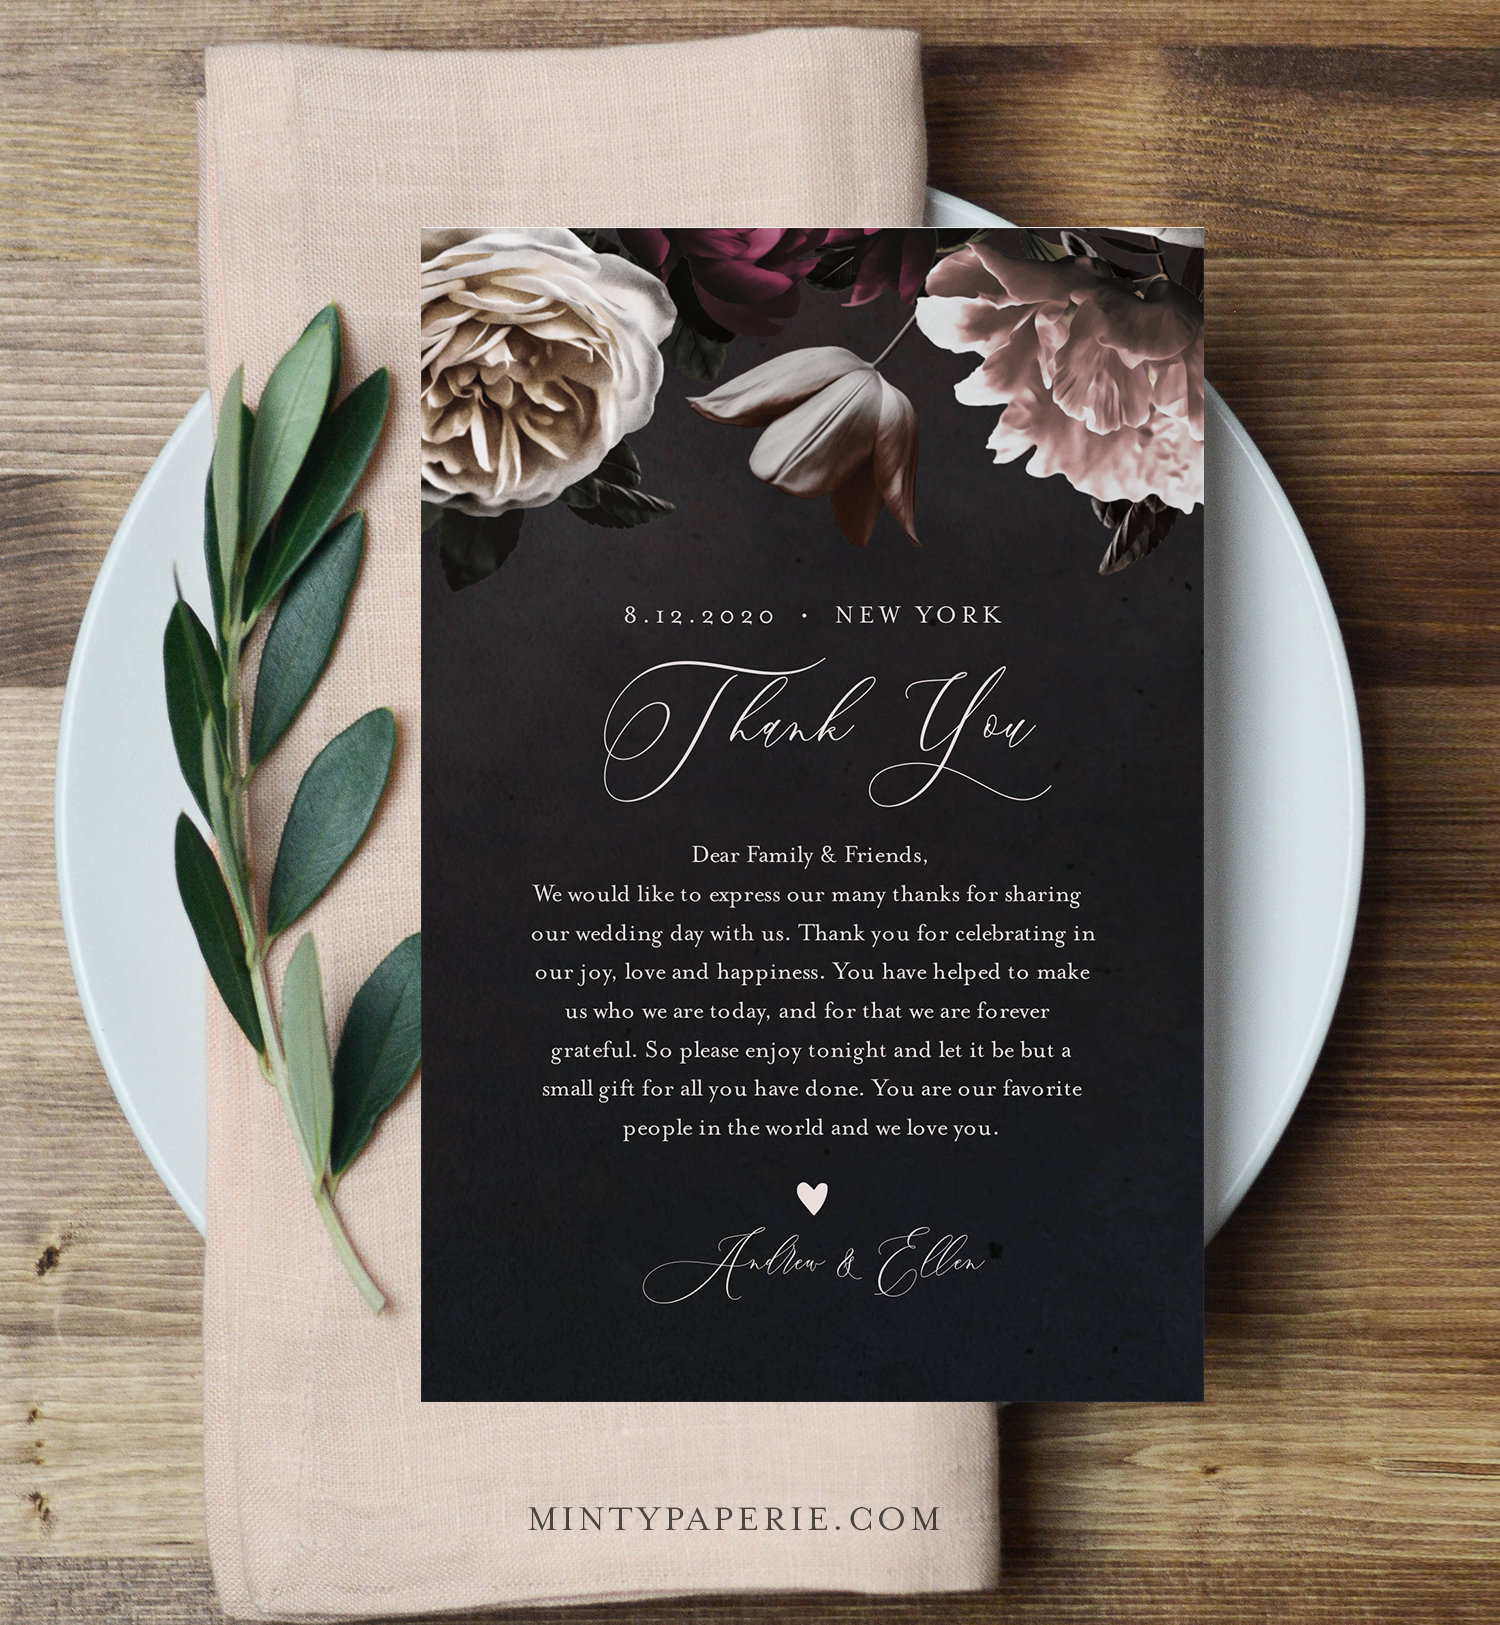 Thank You Letter, Wedding Napkin Note, In Lieu Of Favor